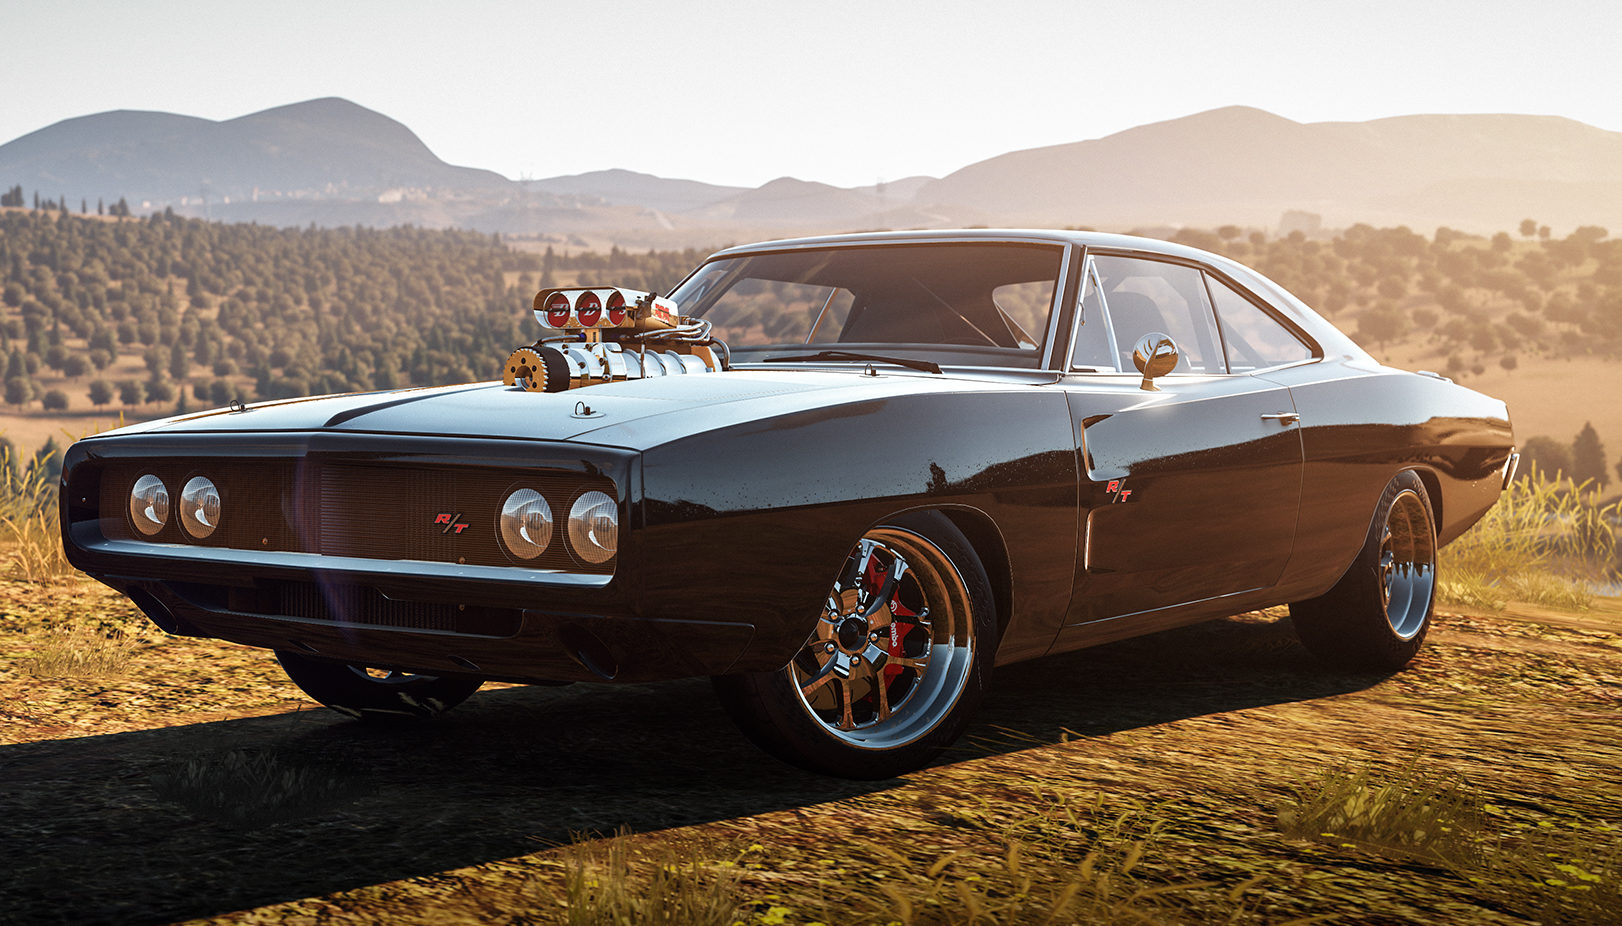 Hobbs & Shaw: The most-memorable cars from the Fast and Furious world